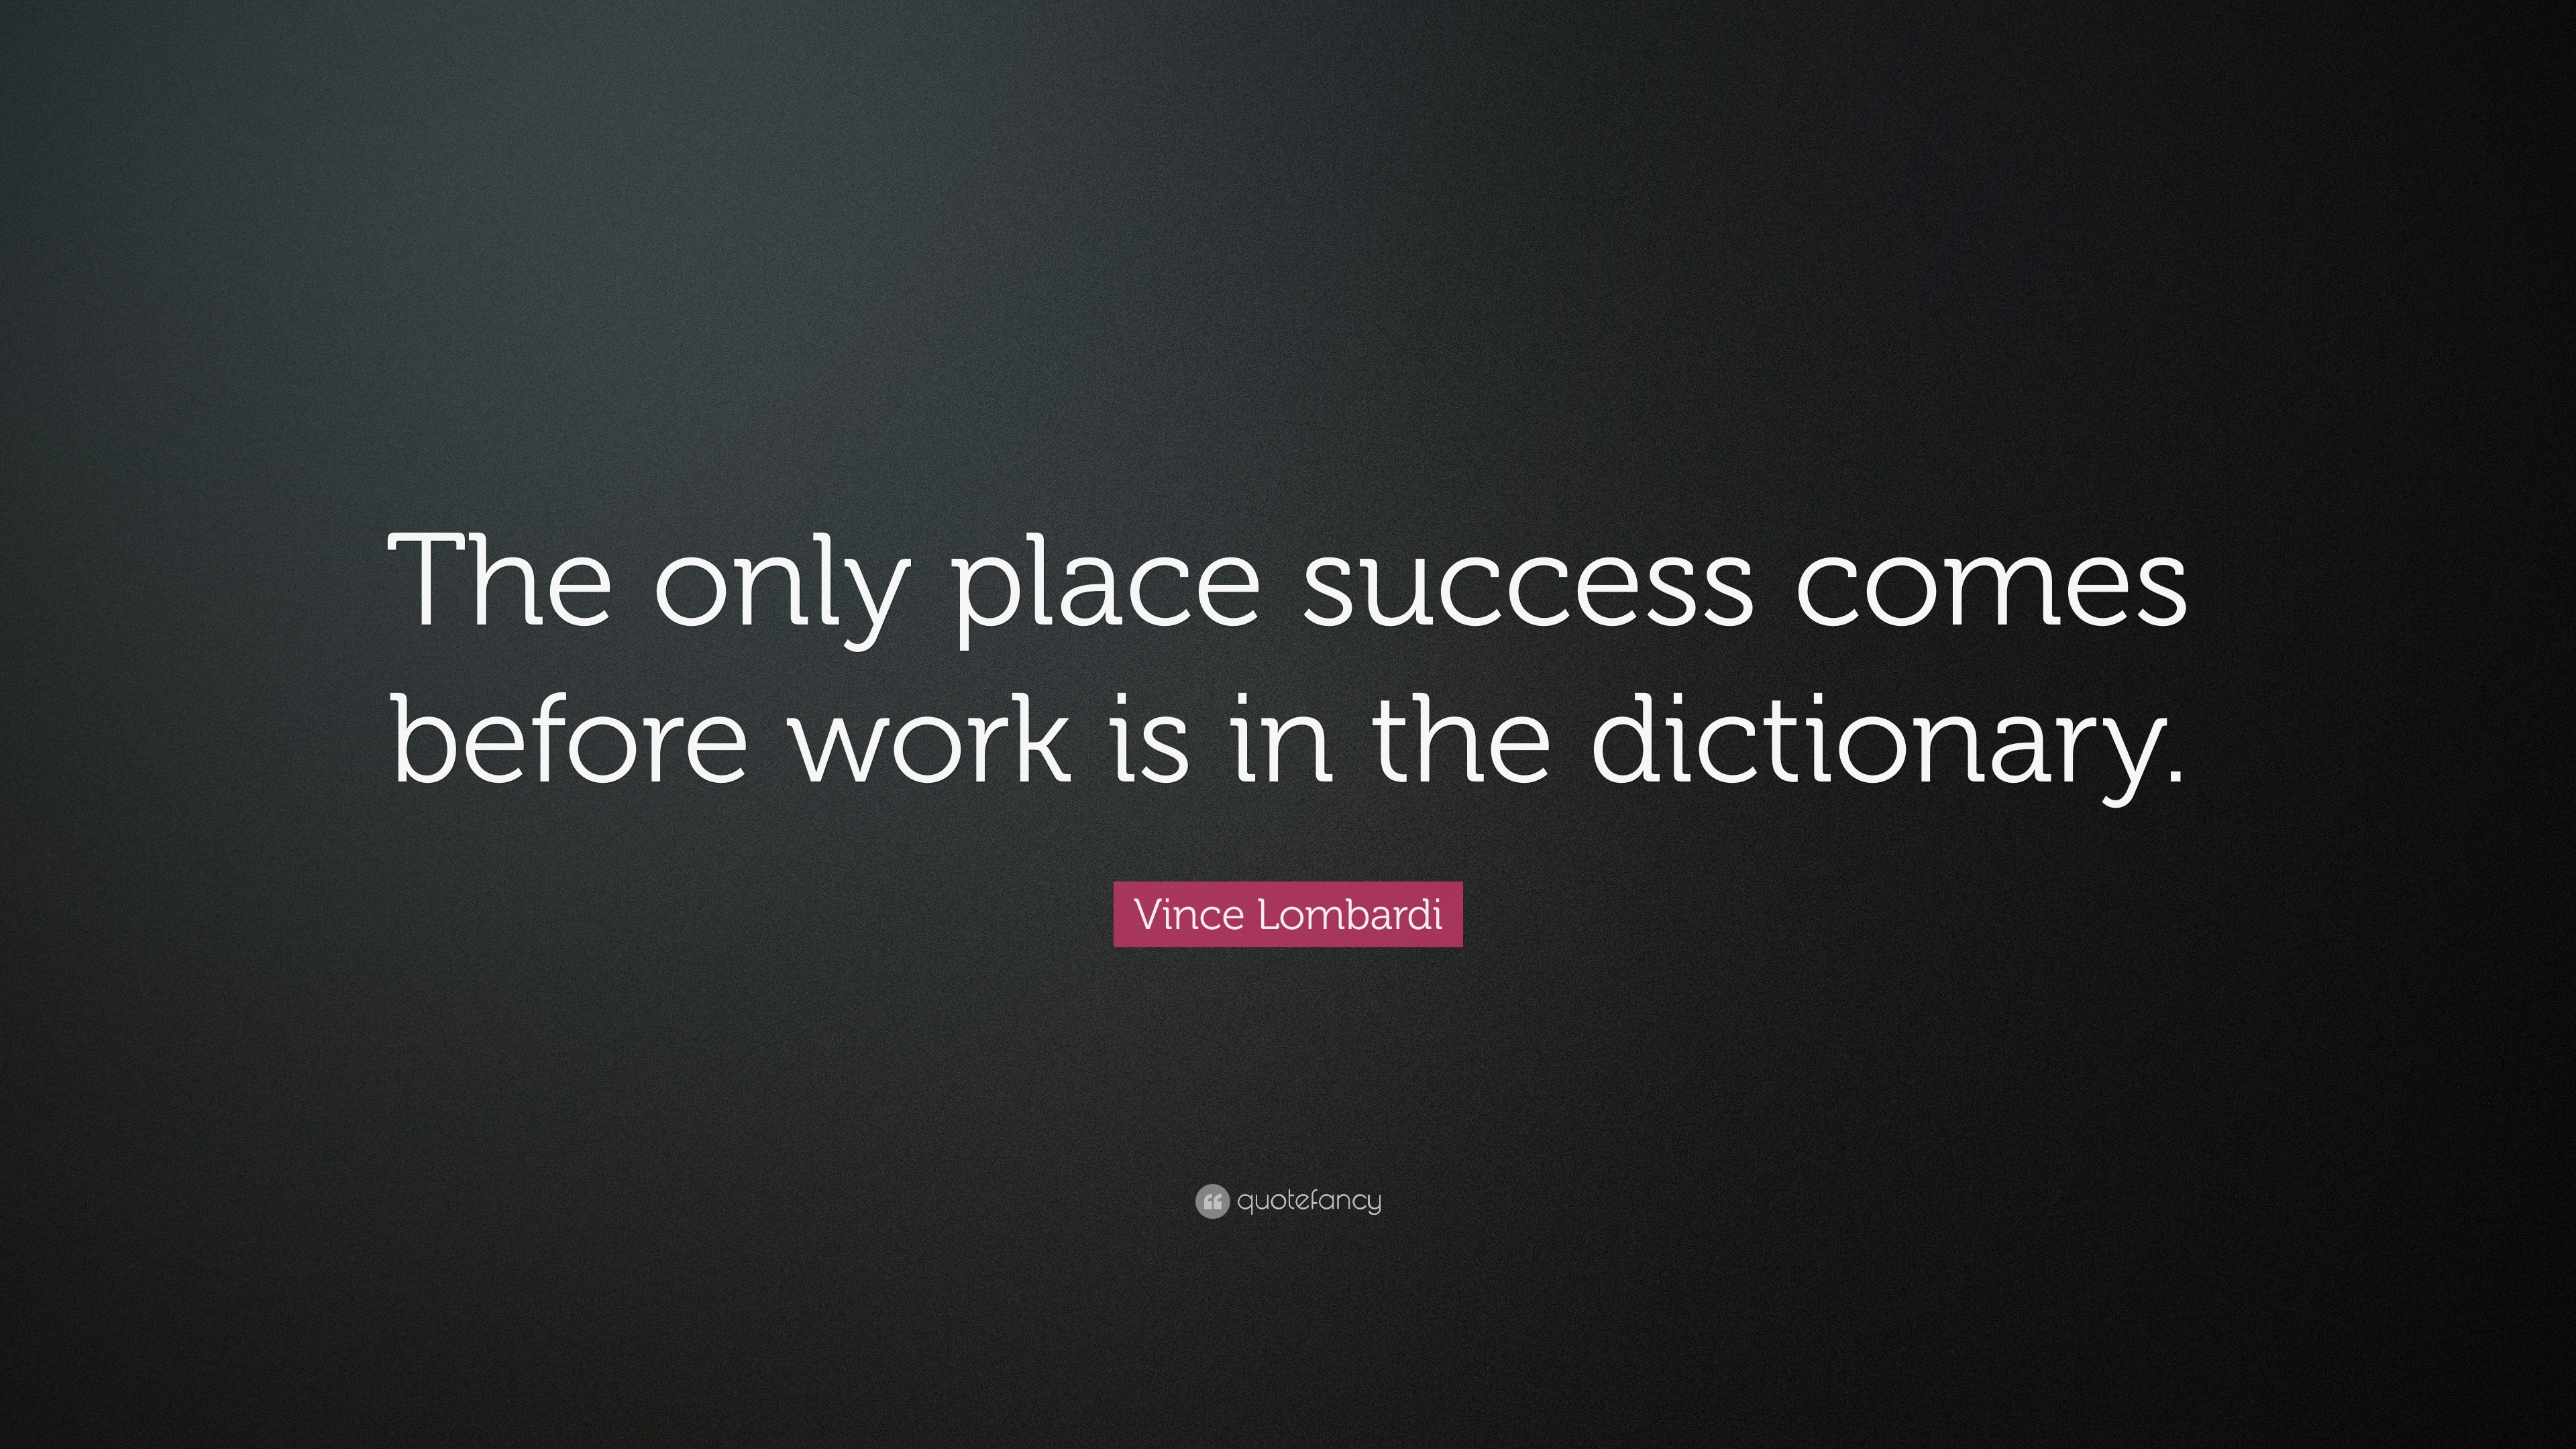 essay on success comes before work only in dictionary